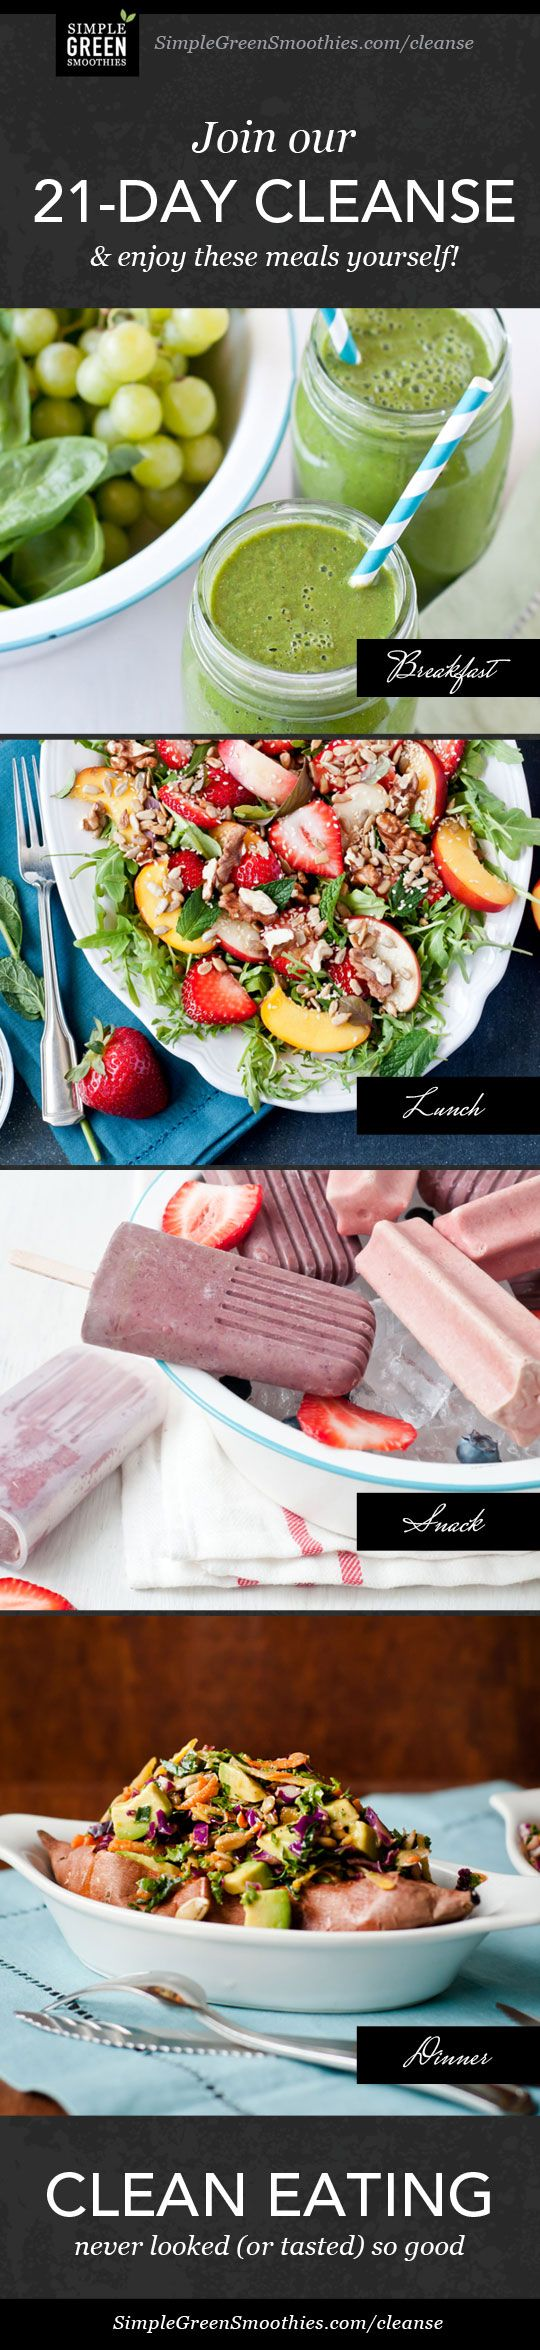 Healthy eating never looked so good. Join this 21-Day Cleanse! http://simplegreensmoothies.com/cleanse